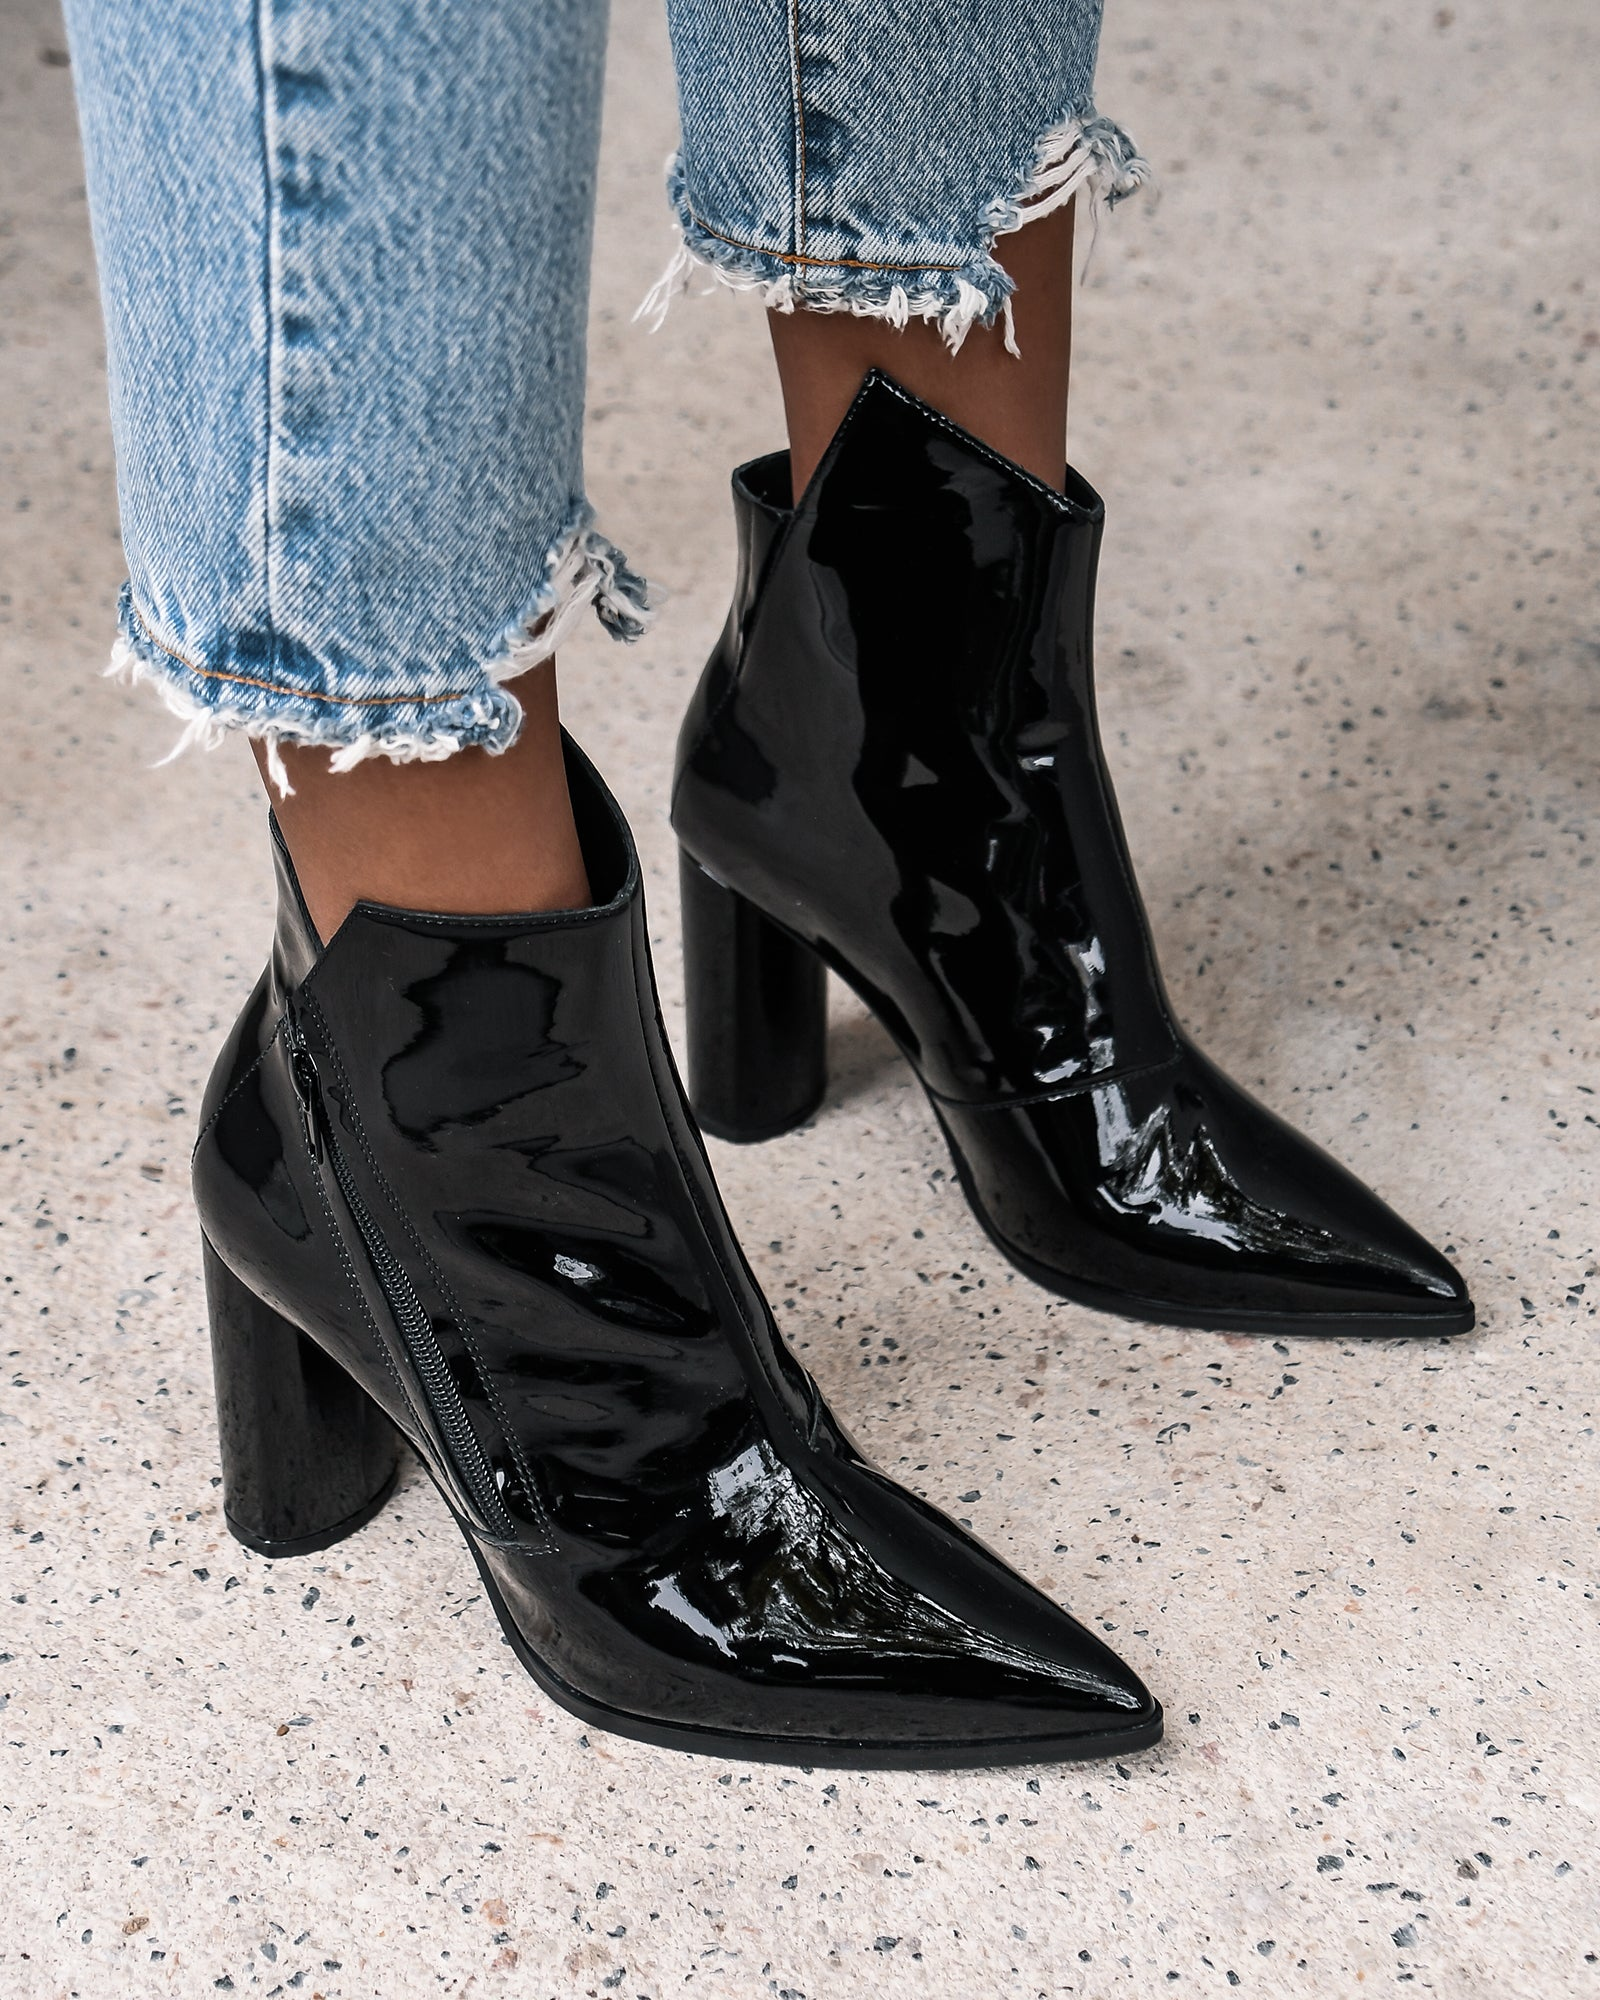 TUX HIGH ANKLE BOOTS BLACK PATENT